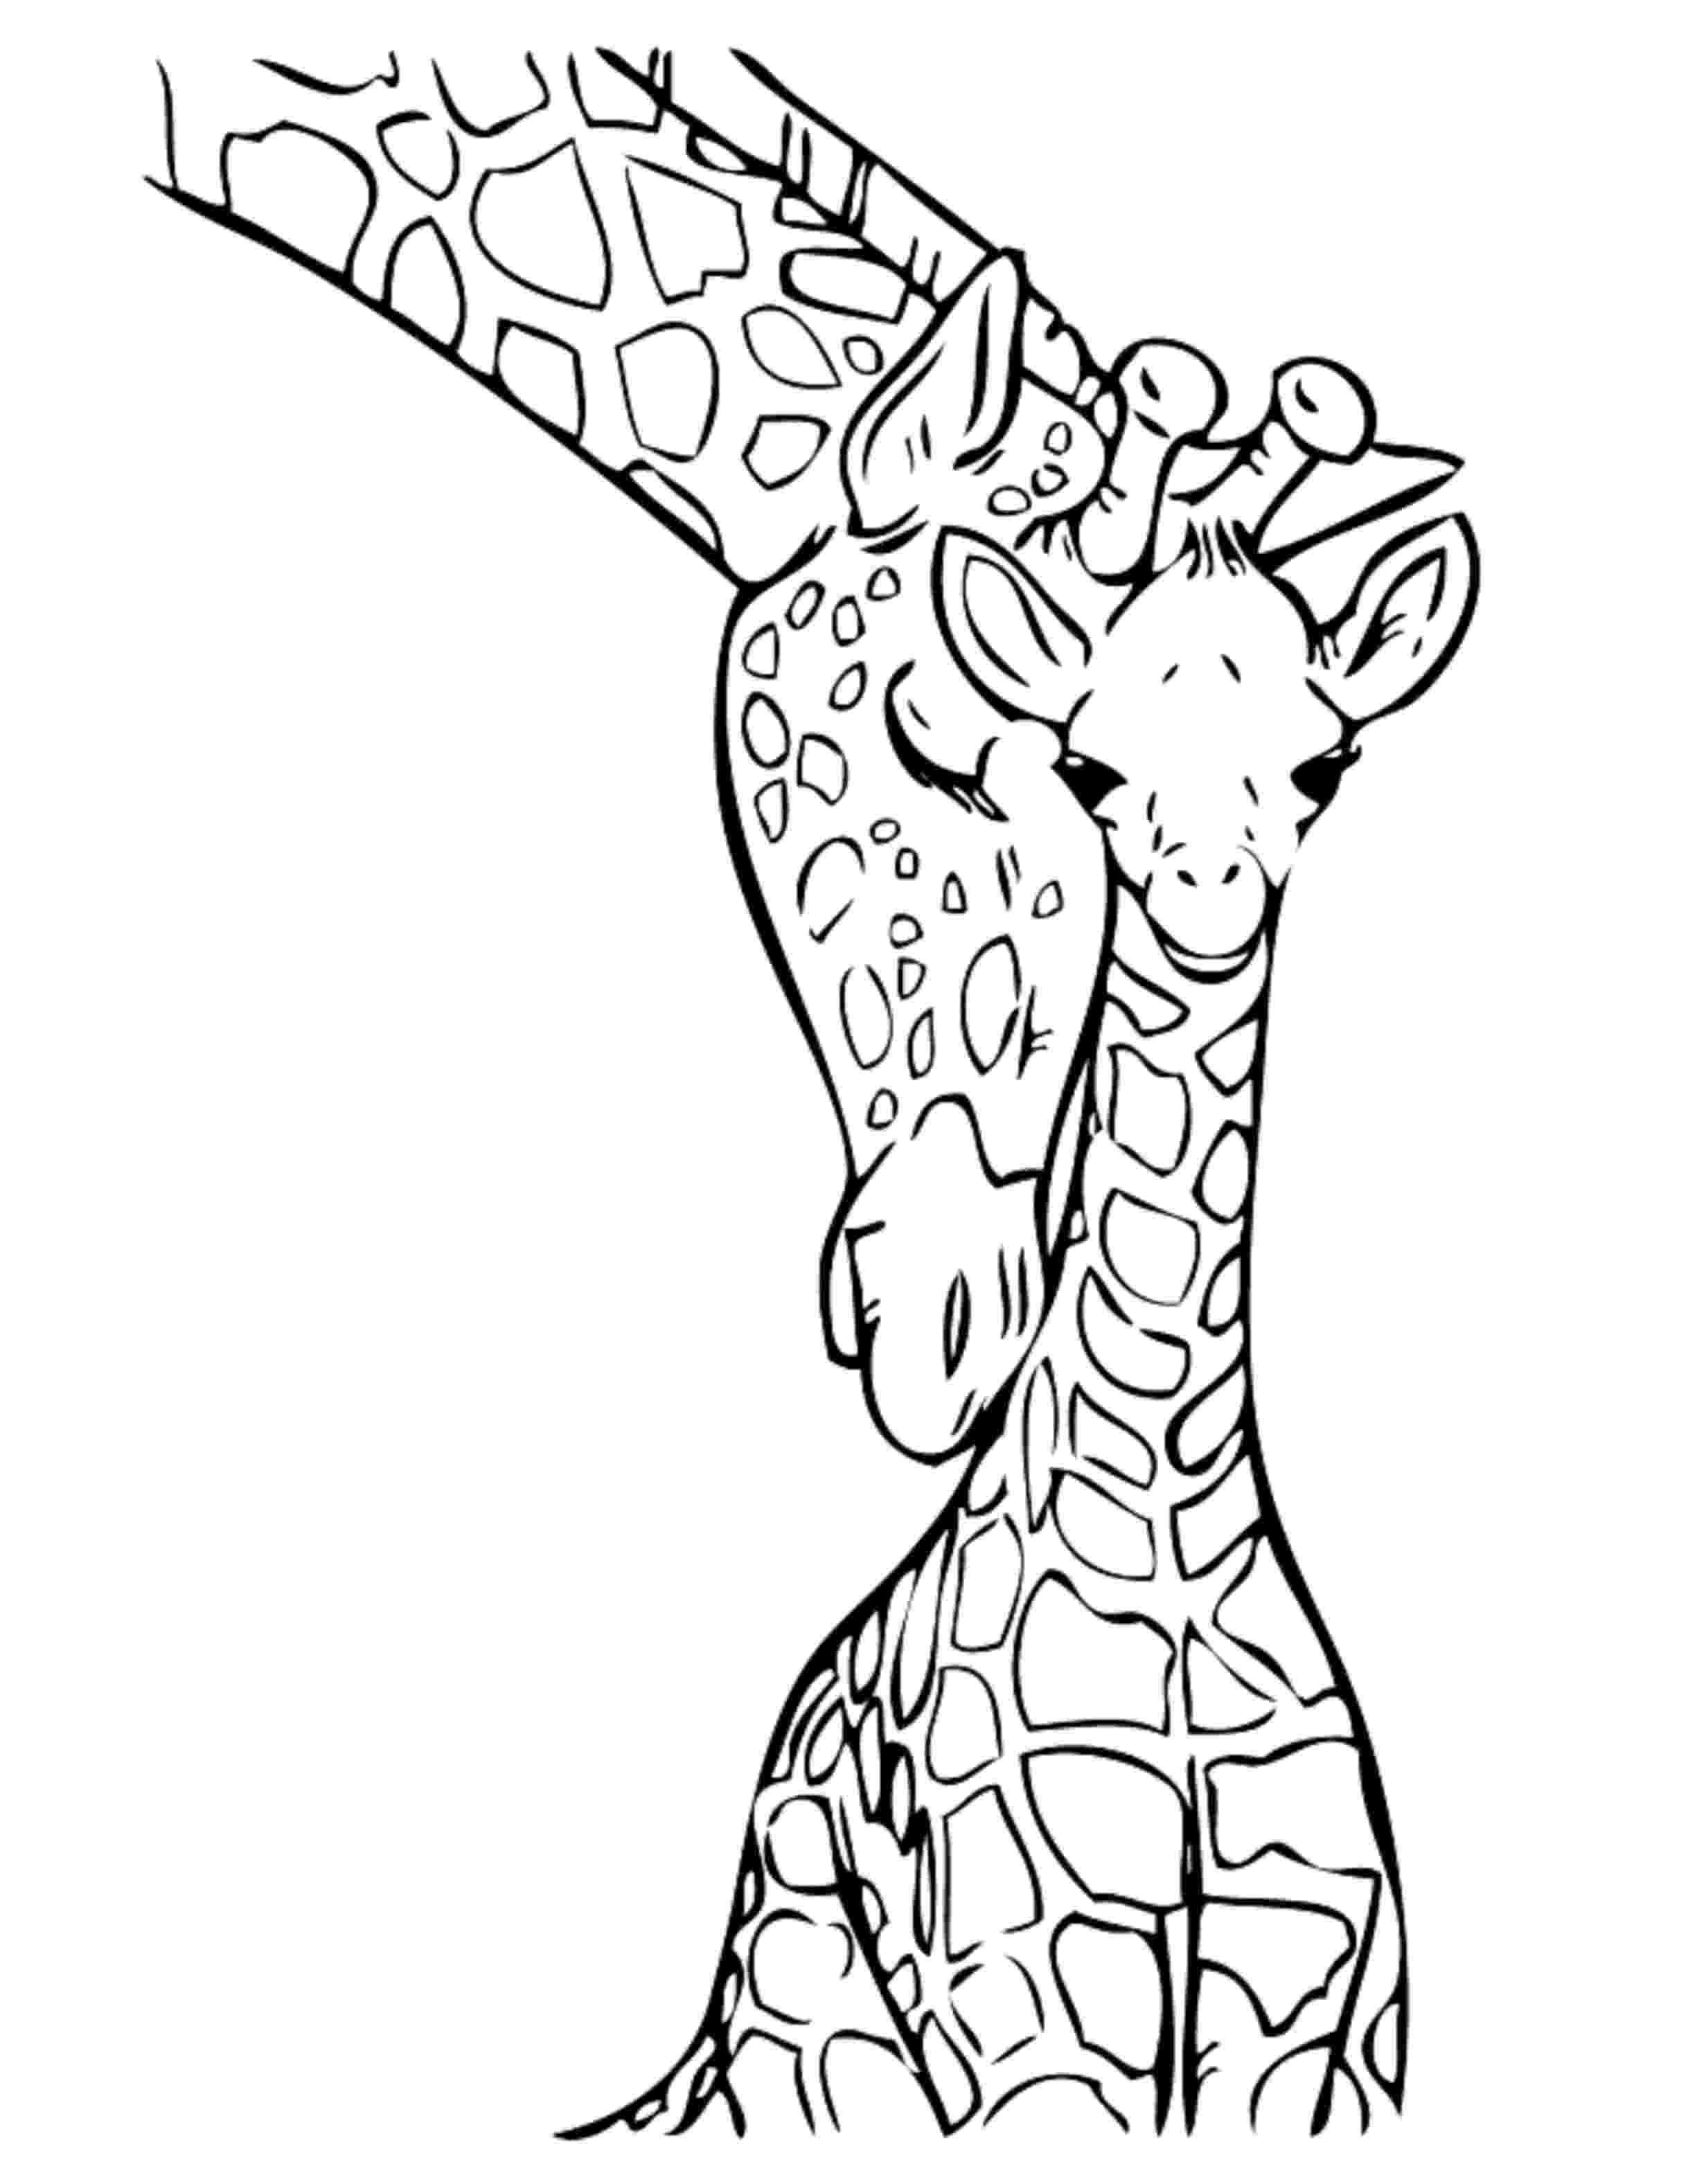 colouring sheet giraffe giraffes coloring pages to download and print for free sheet giraffe colouring